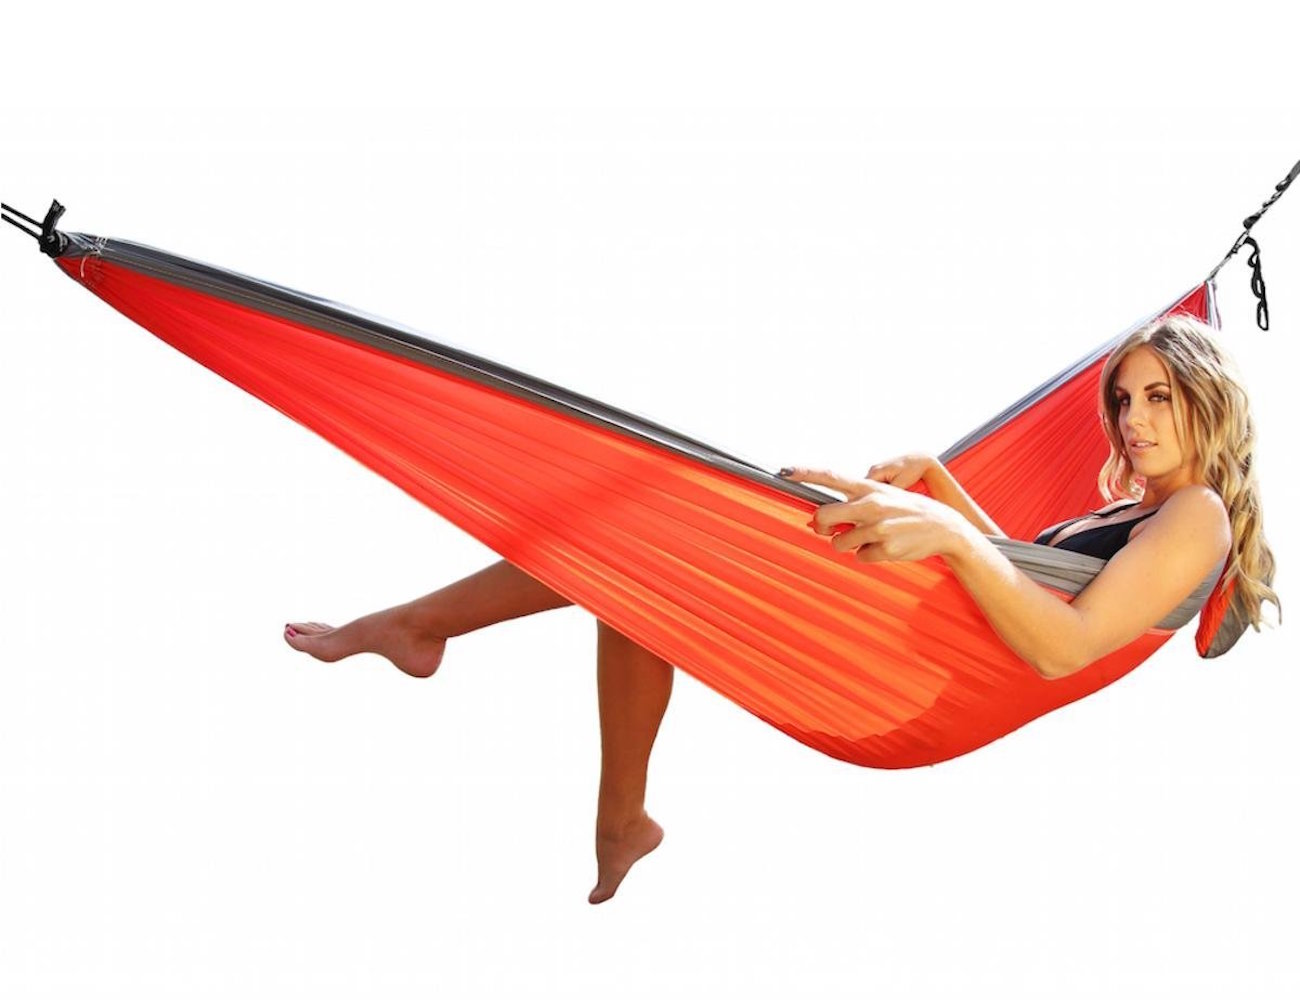 Scout Camping Hammock by Ultimate Hammocks